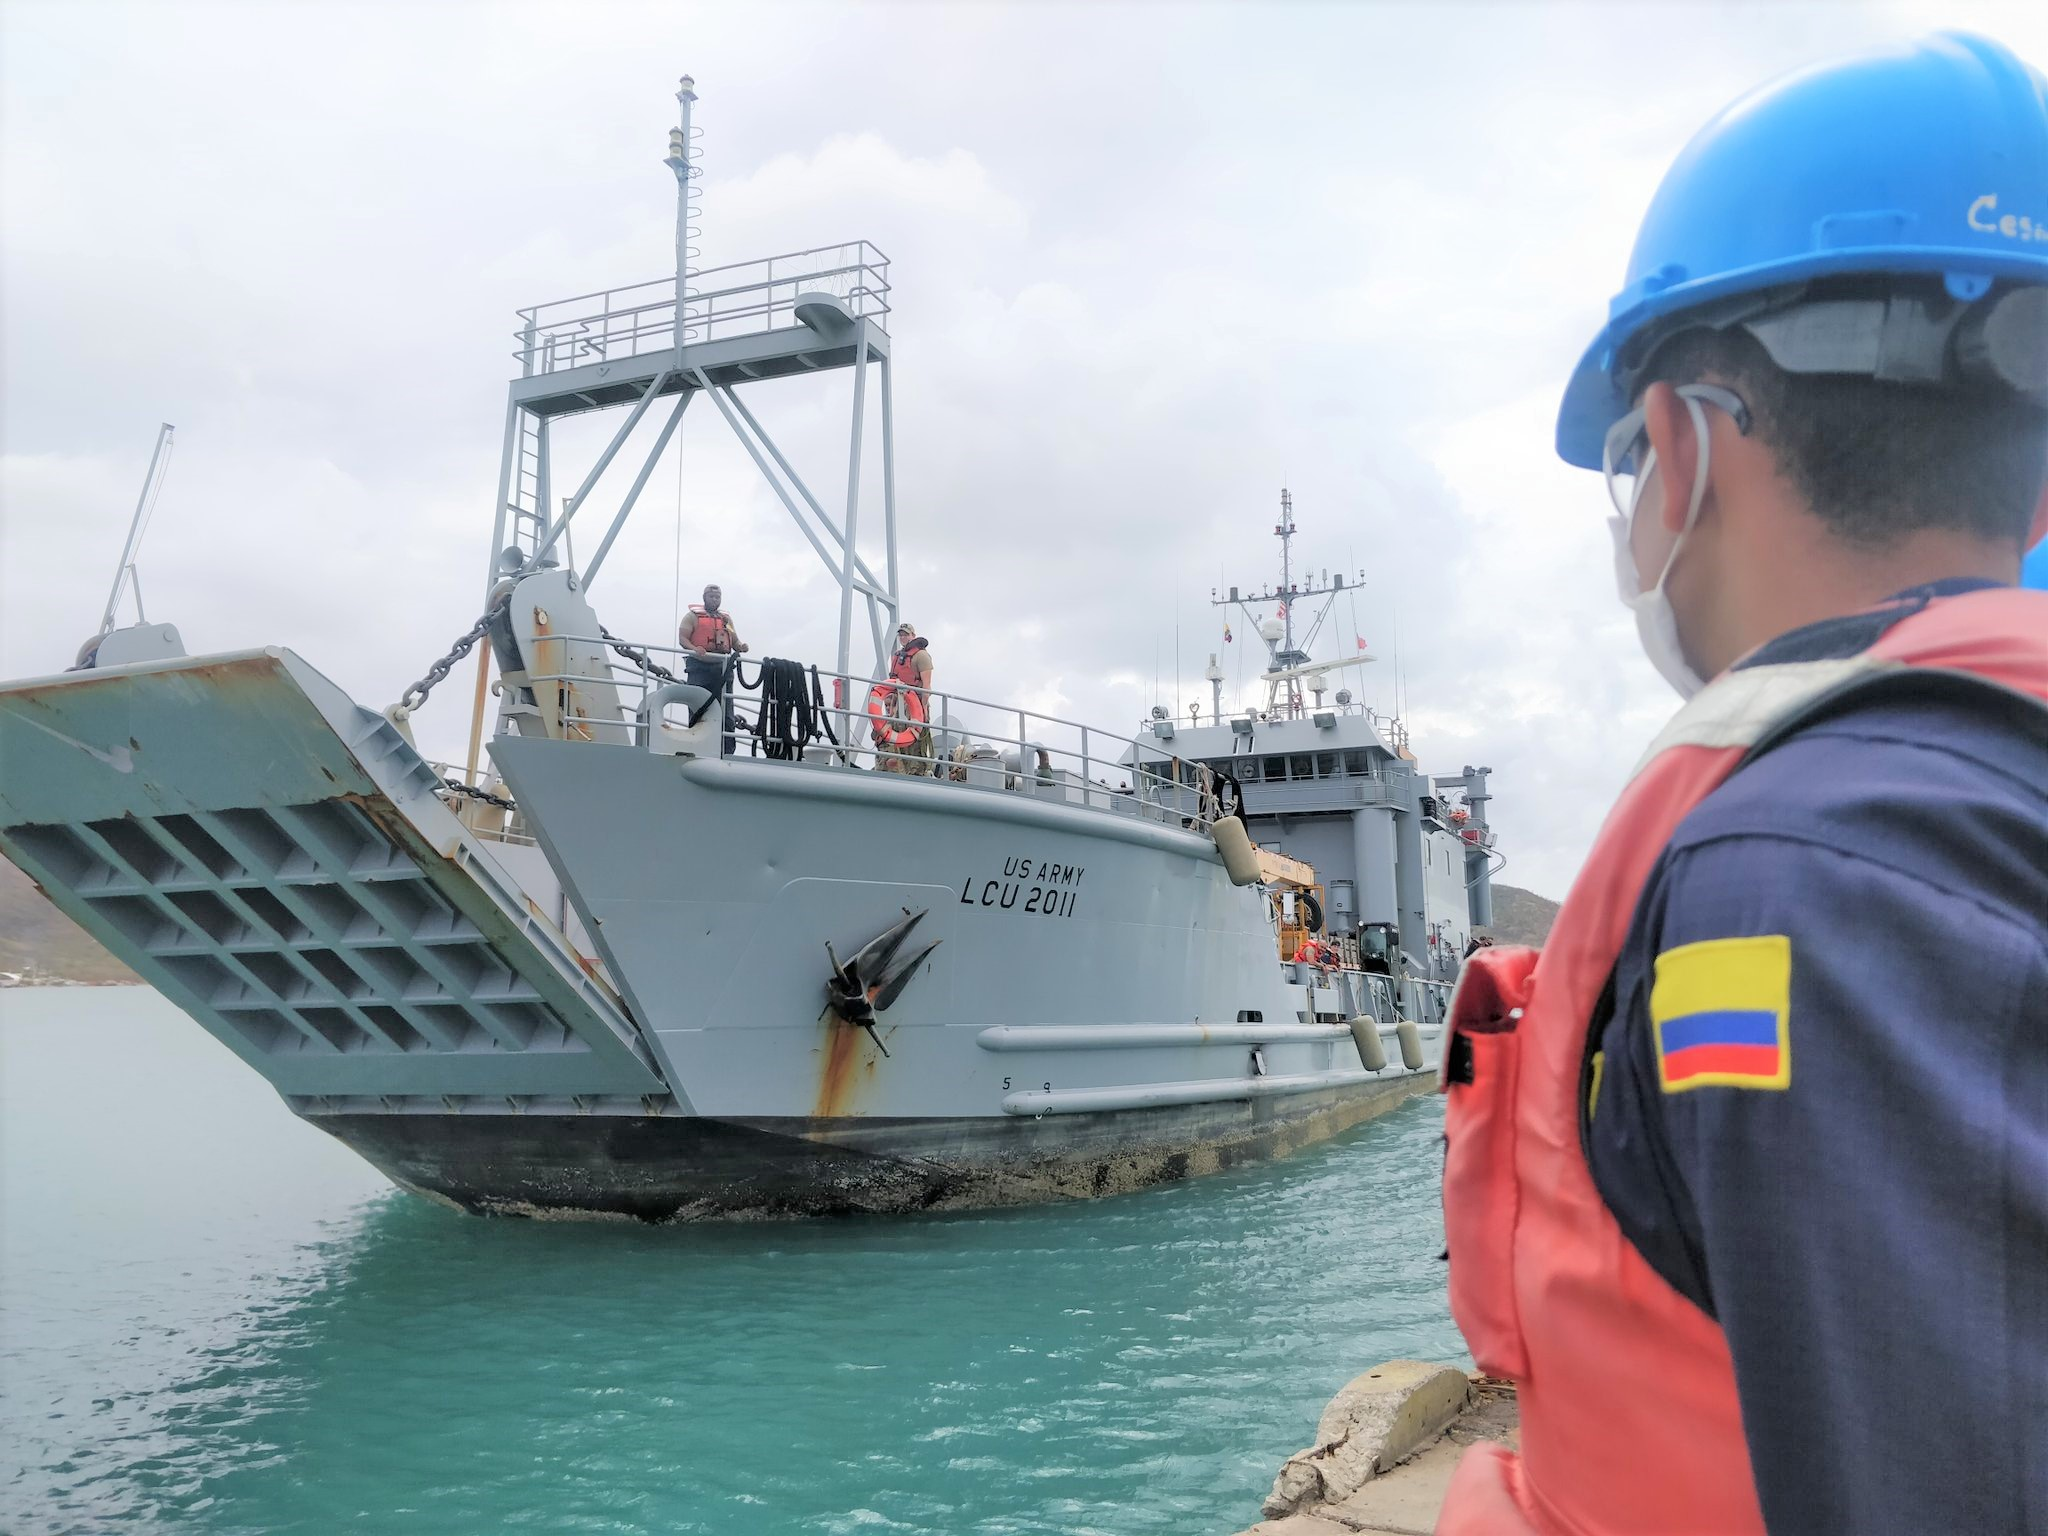 US Army Supports Reconstruction of Colombian Islands after Hurricane Iota